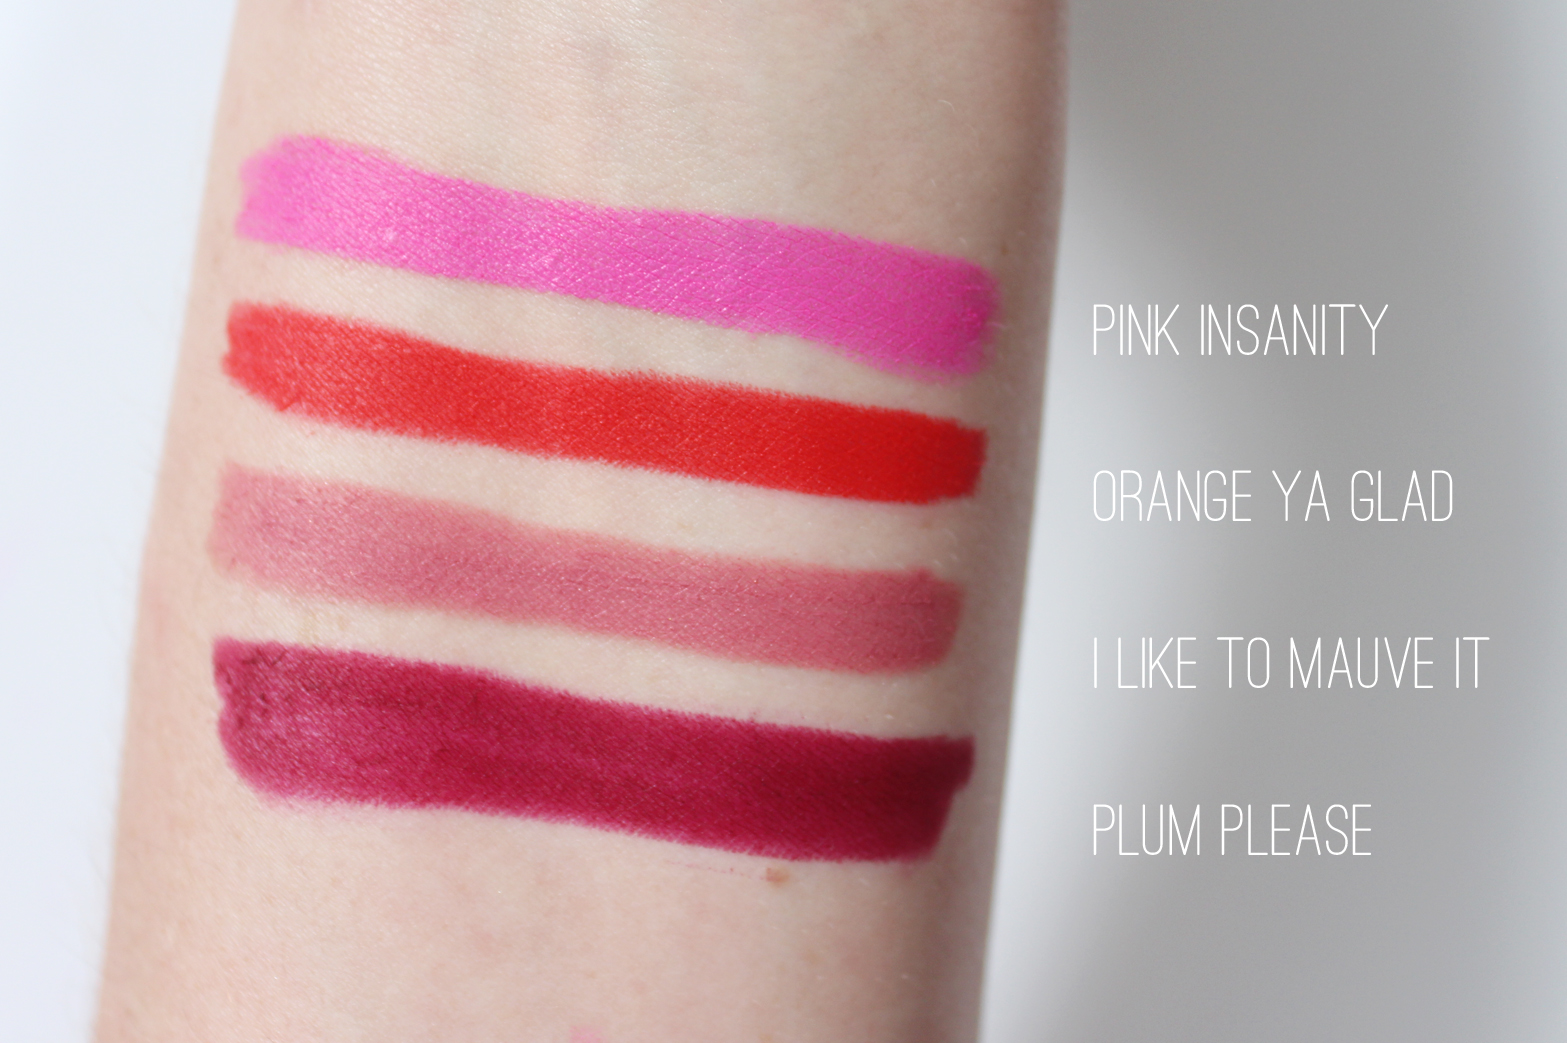 MAYBELLINE | Color Blur by Lip Studio Cream Matte Pencil - Review + Swatches - CassandraMyee